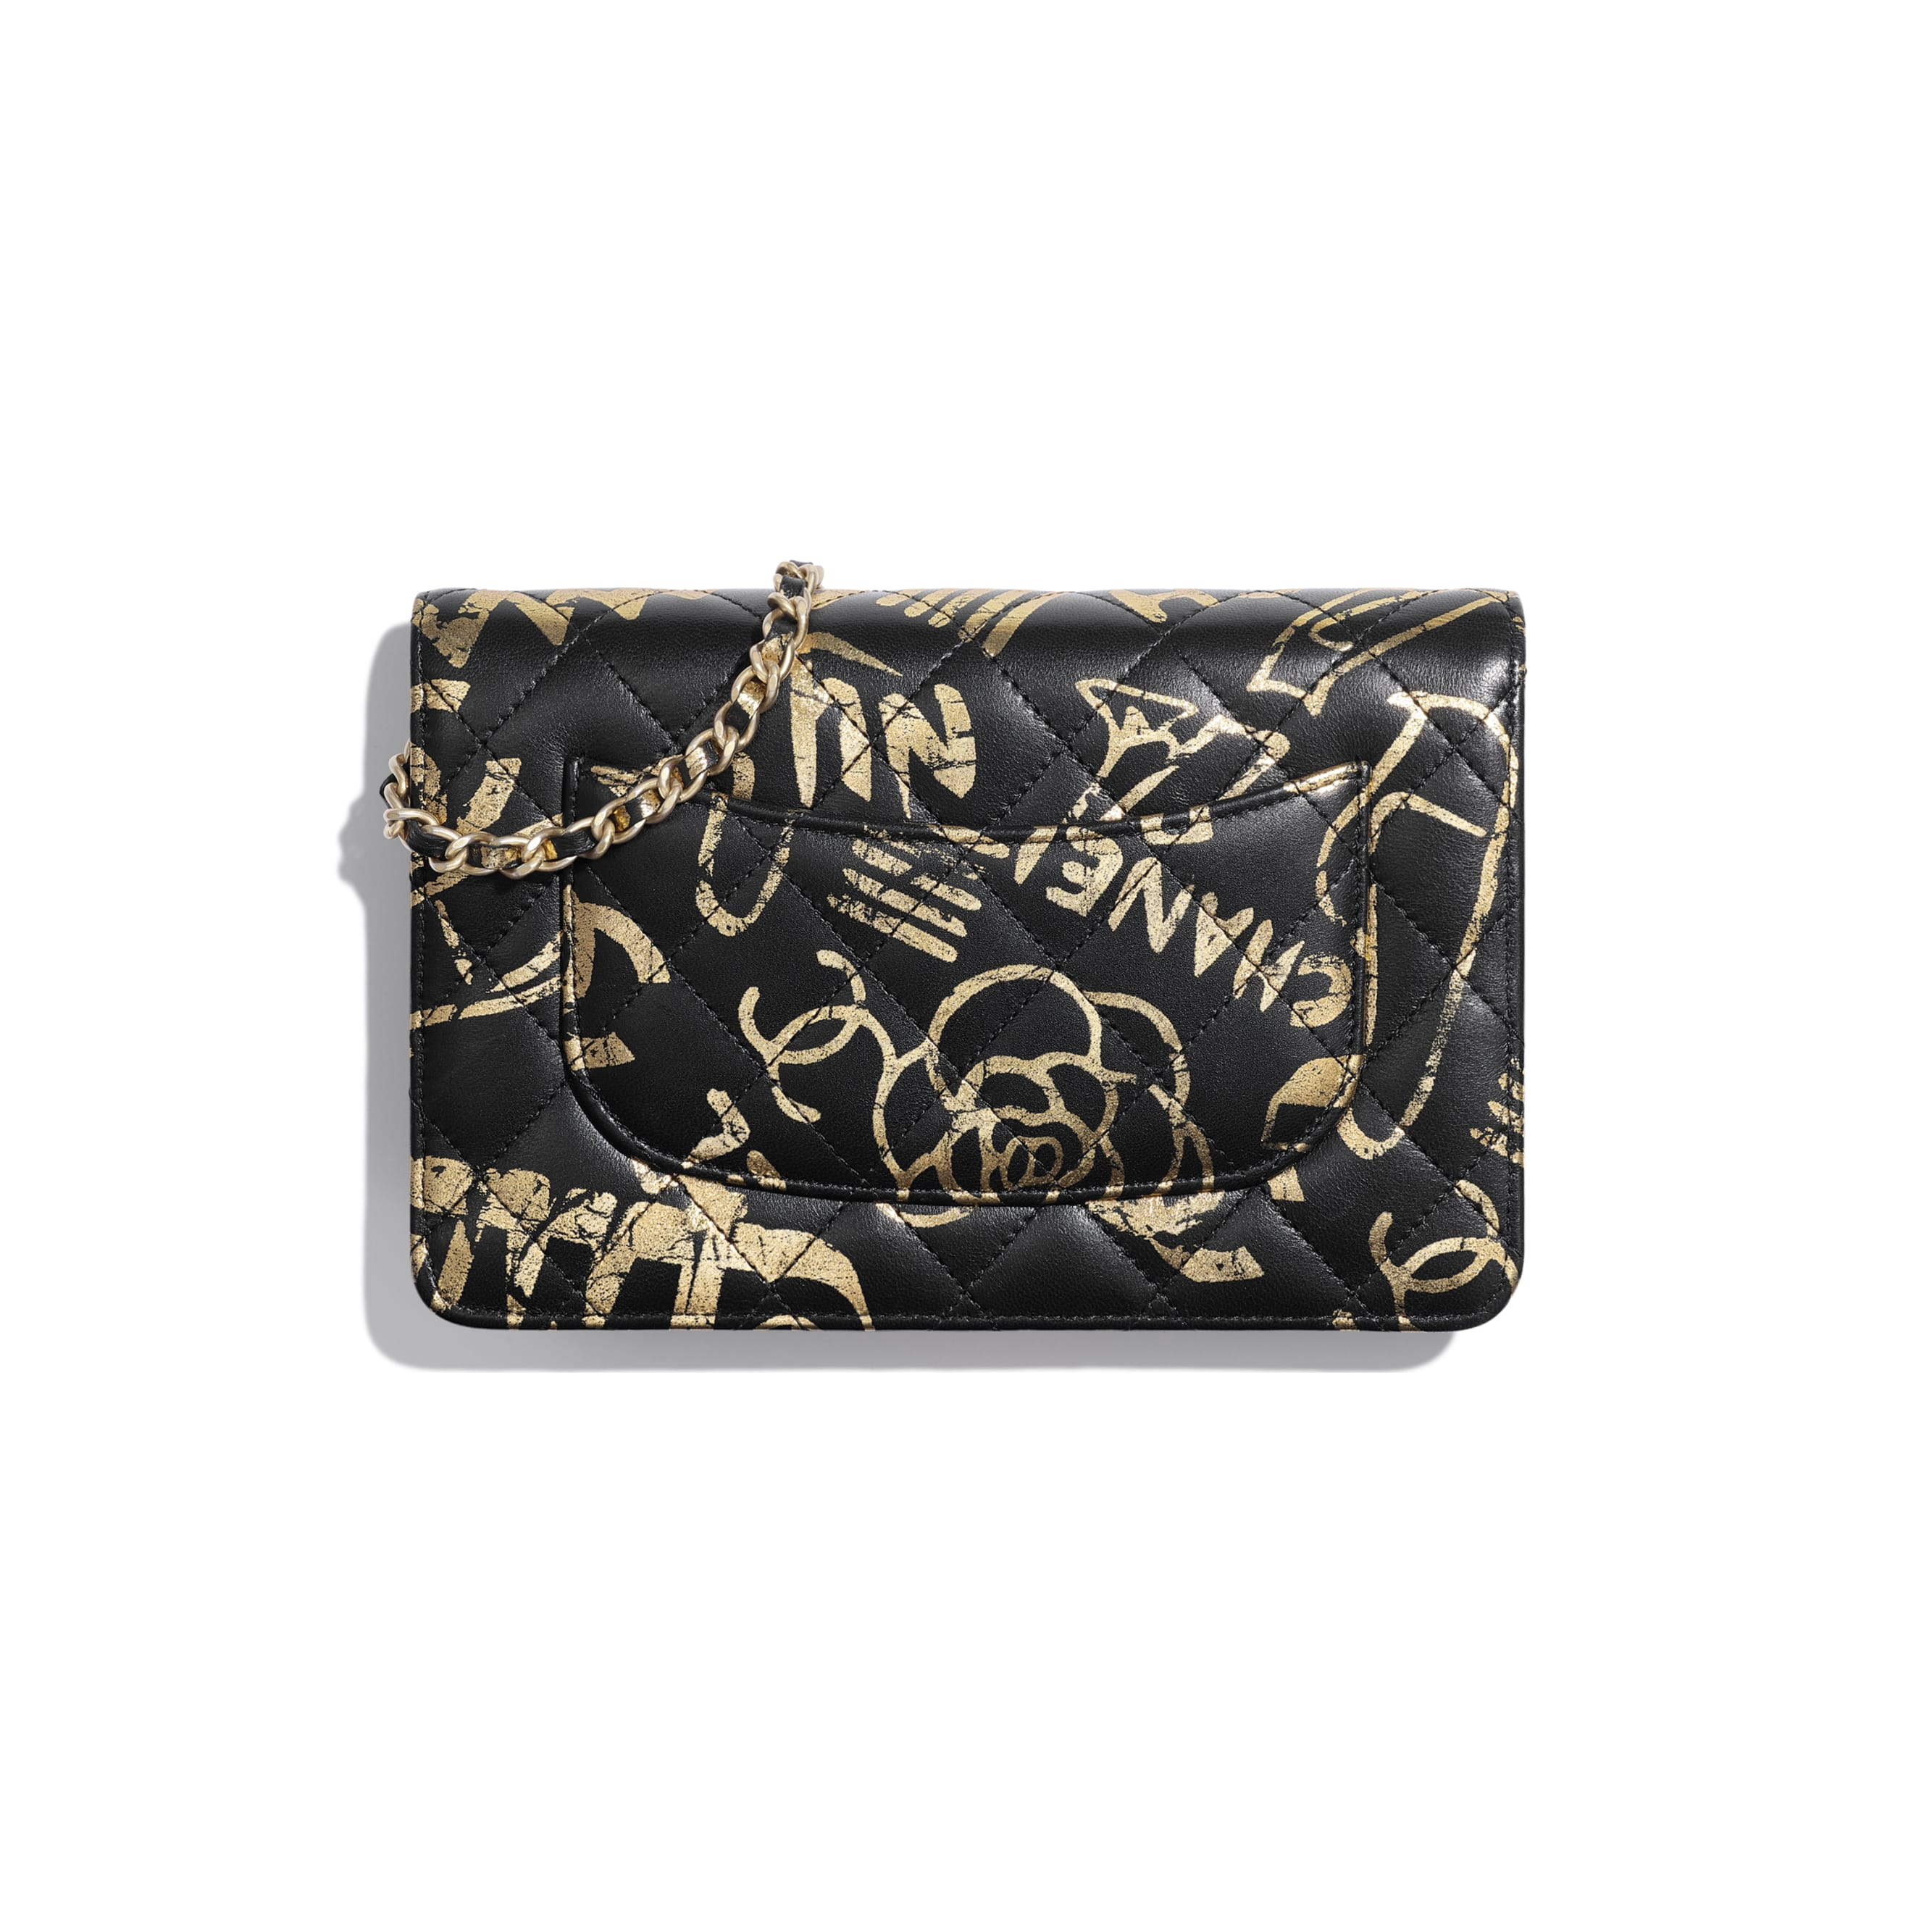 Wallet on Chain - Black & Gold - Printed Calfskin & Gold-Tone Metal - Alternative view - see standard sized version